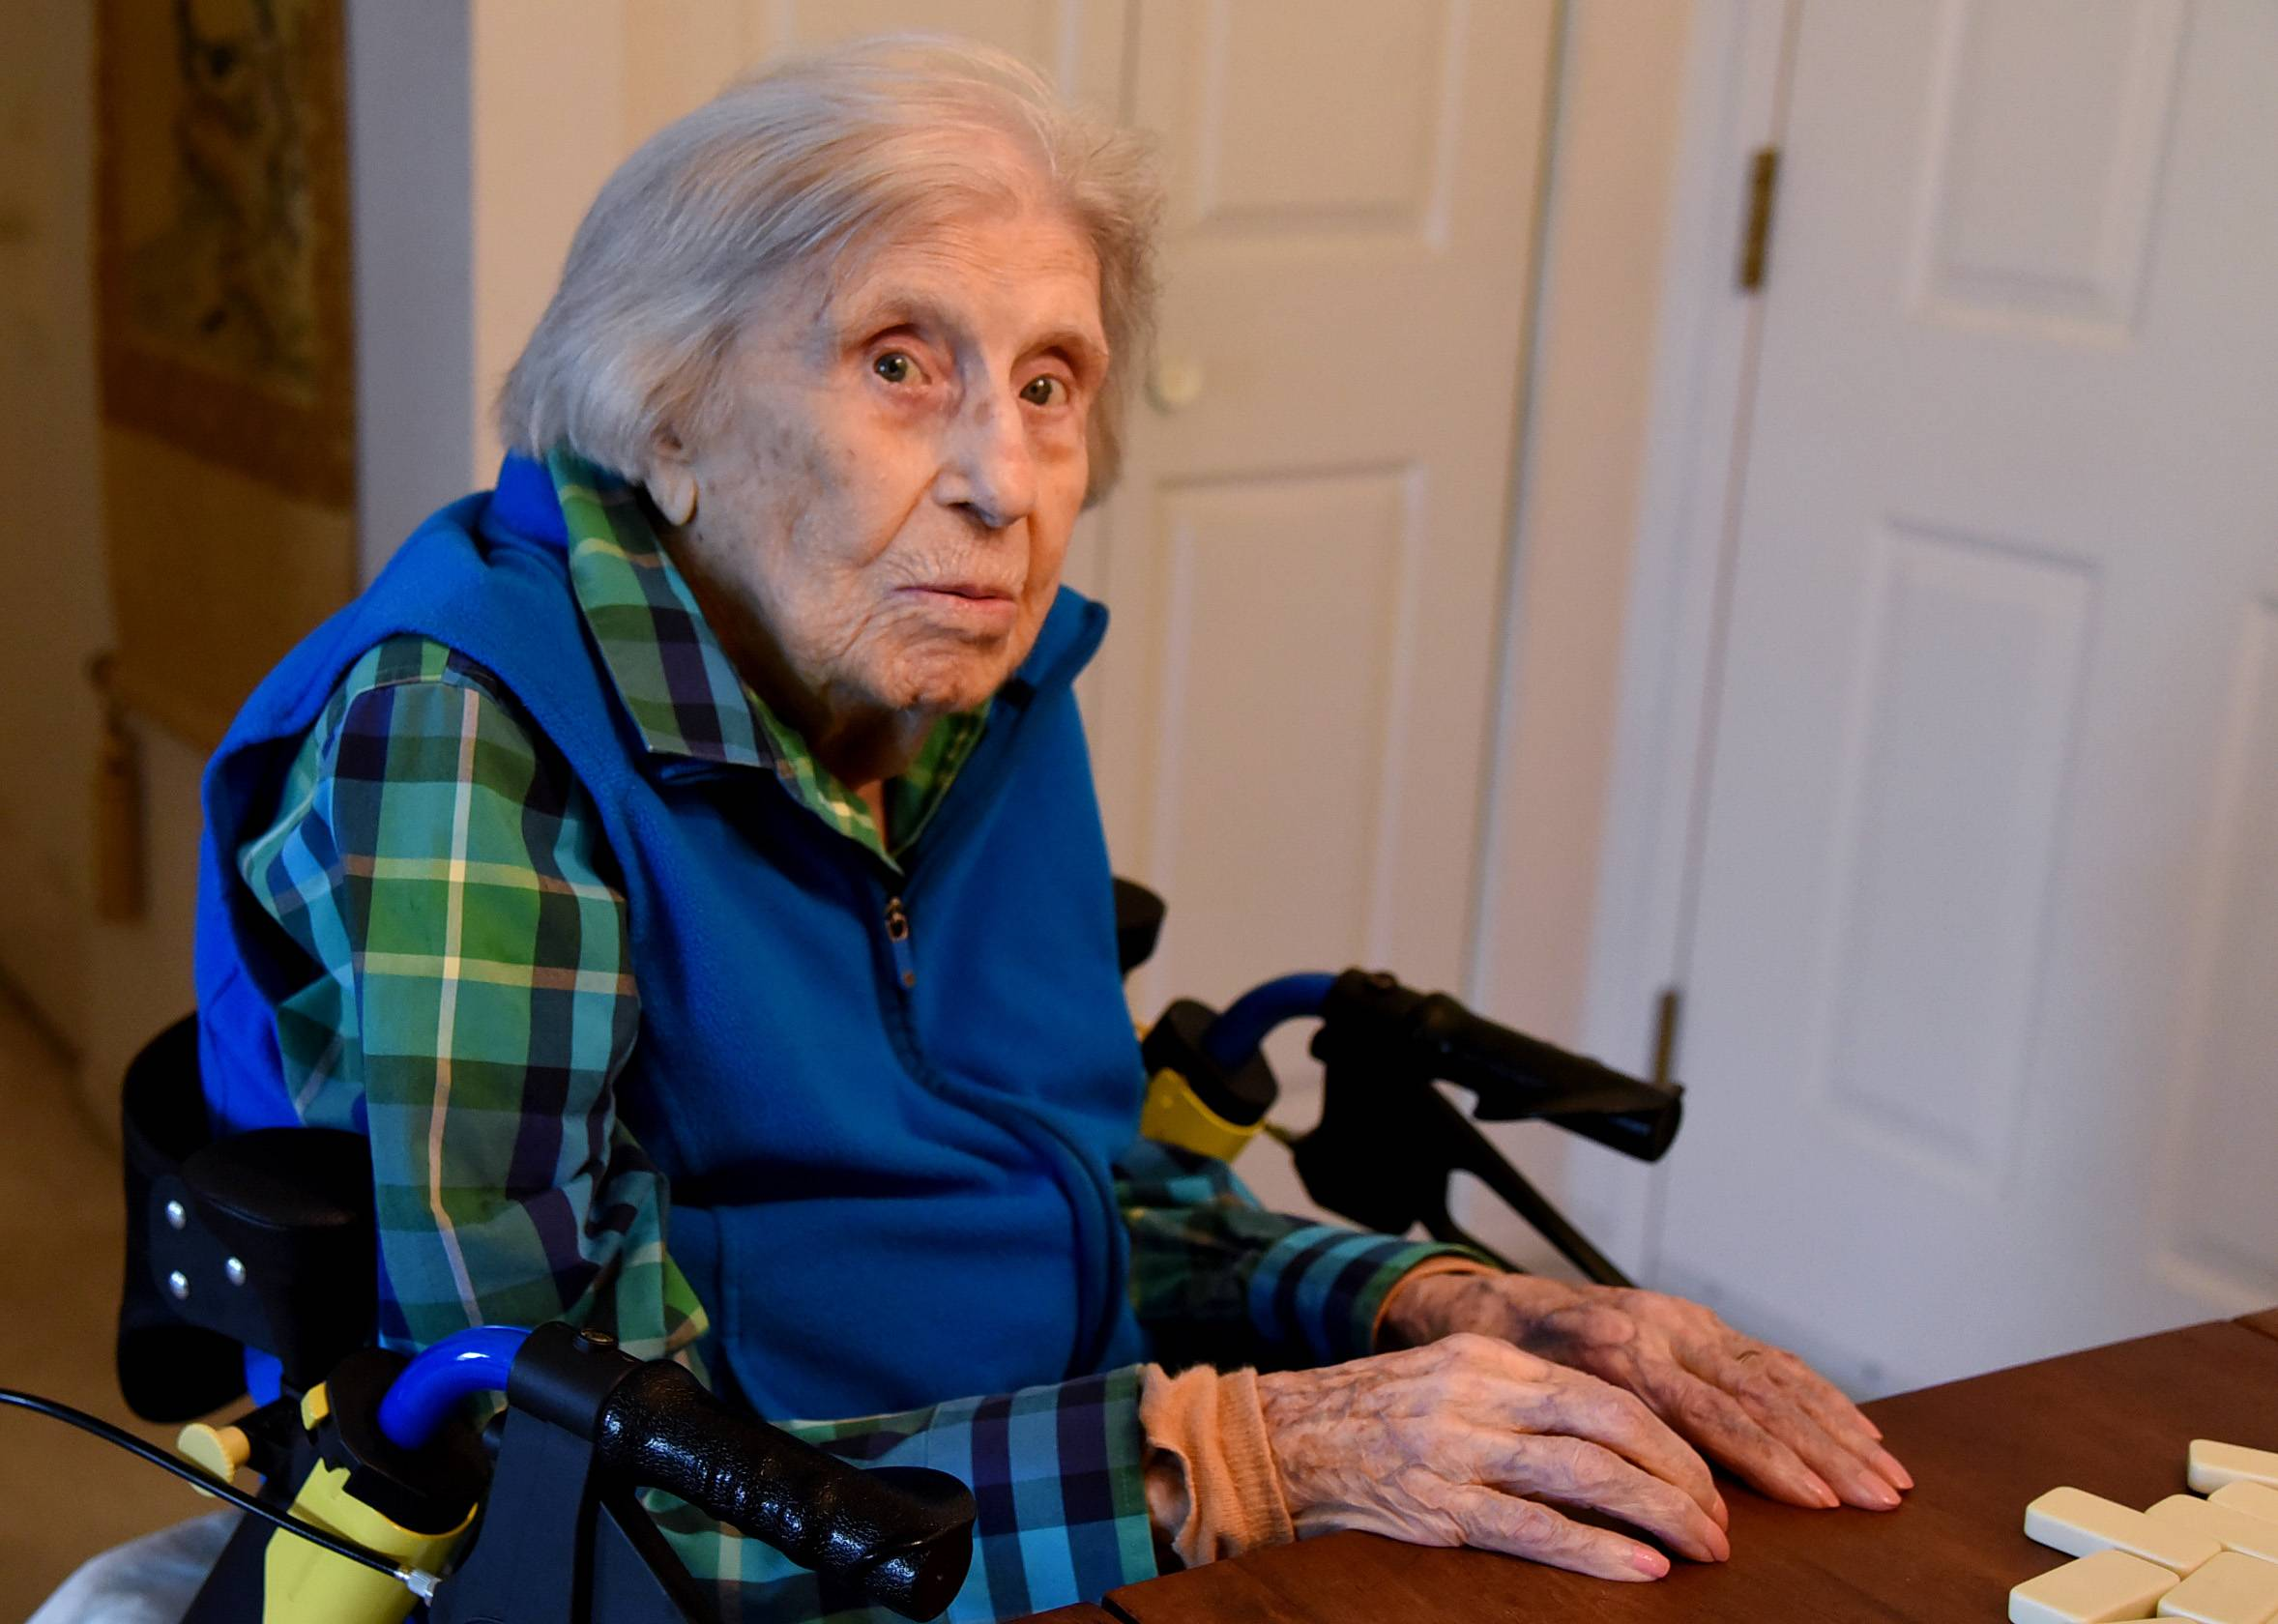 Lois Arbanas will join some select company -- about one in 5 million people -- when she turns 110 next month.